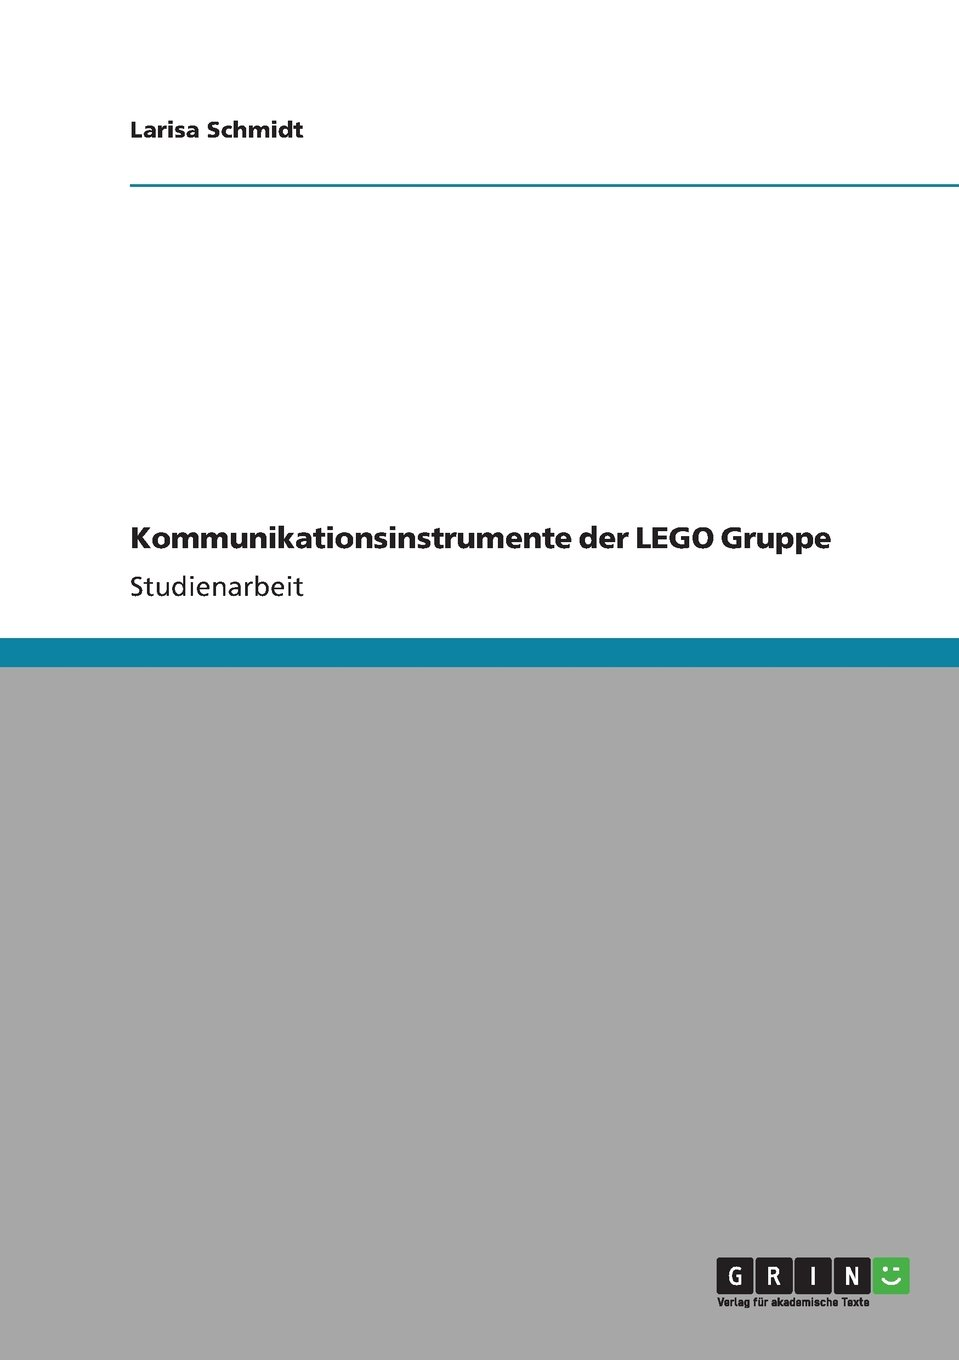 Download Kommunikationsinstrumente der LEGO Gruppe (German Edition) PDF